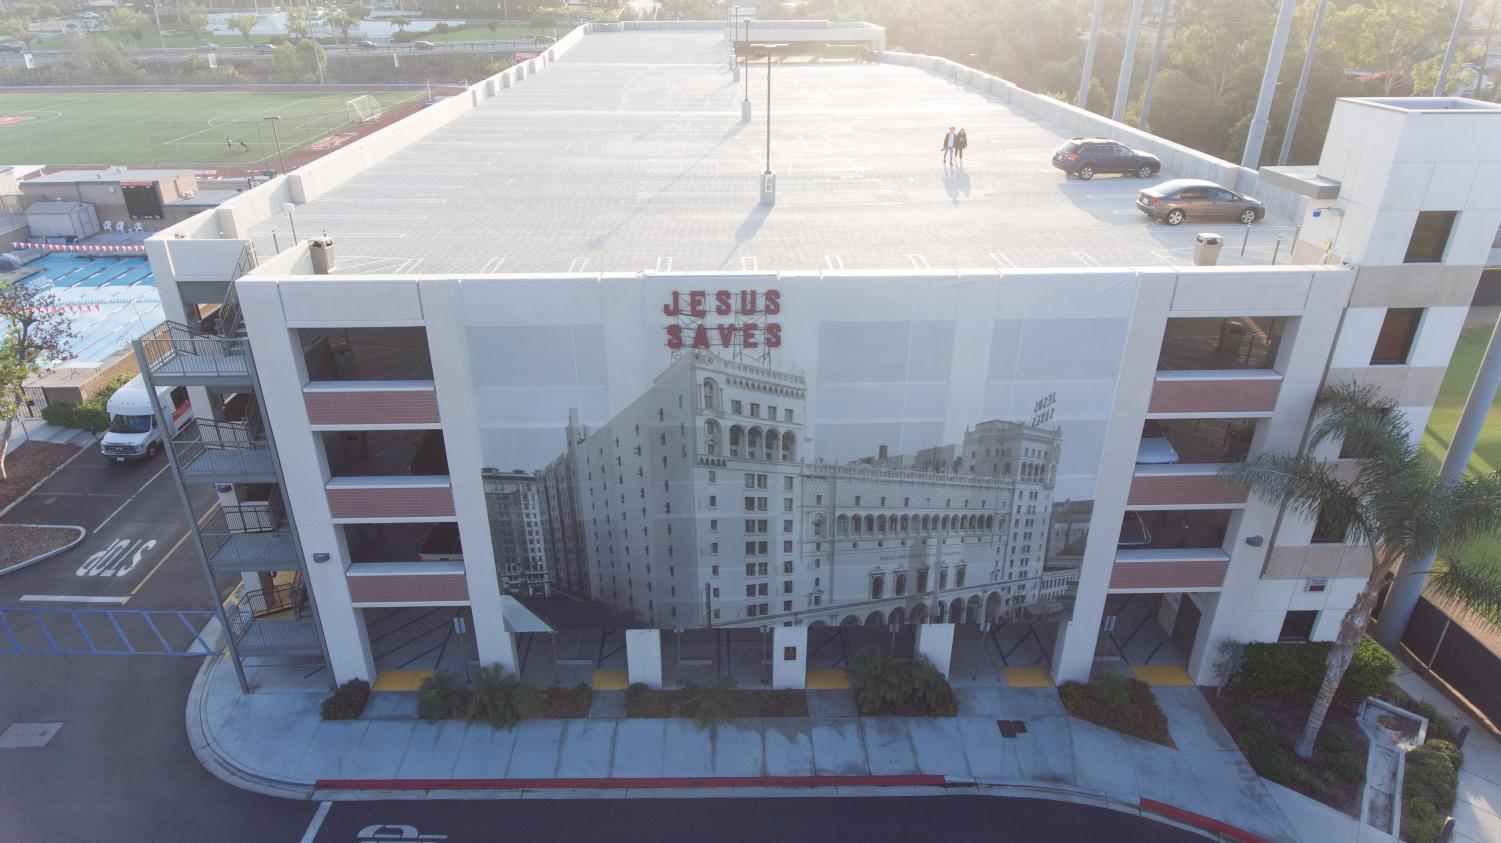 Photo depicts a birds eye view drone image of the Jesus Saves Parking Structure